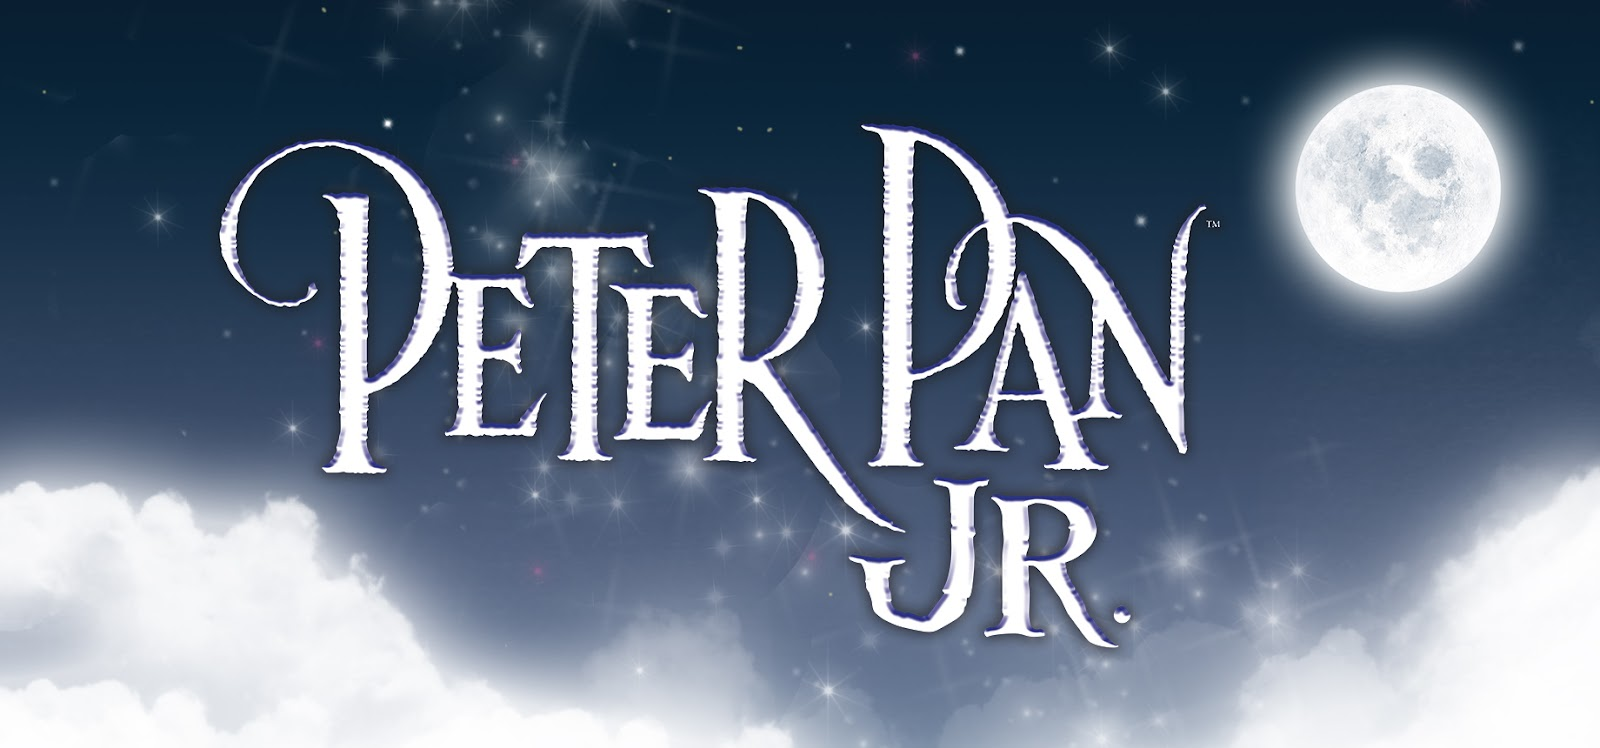 Image result for peter pan jr. moon logo